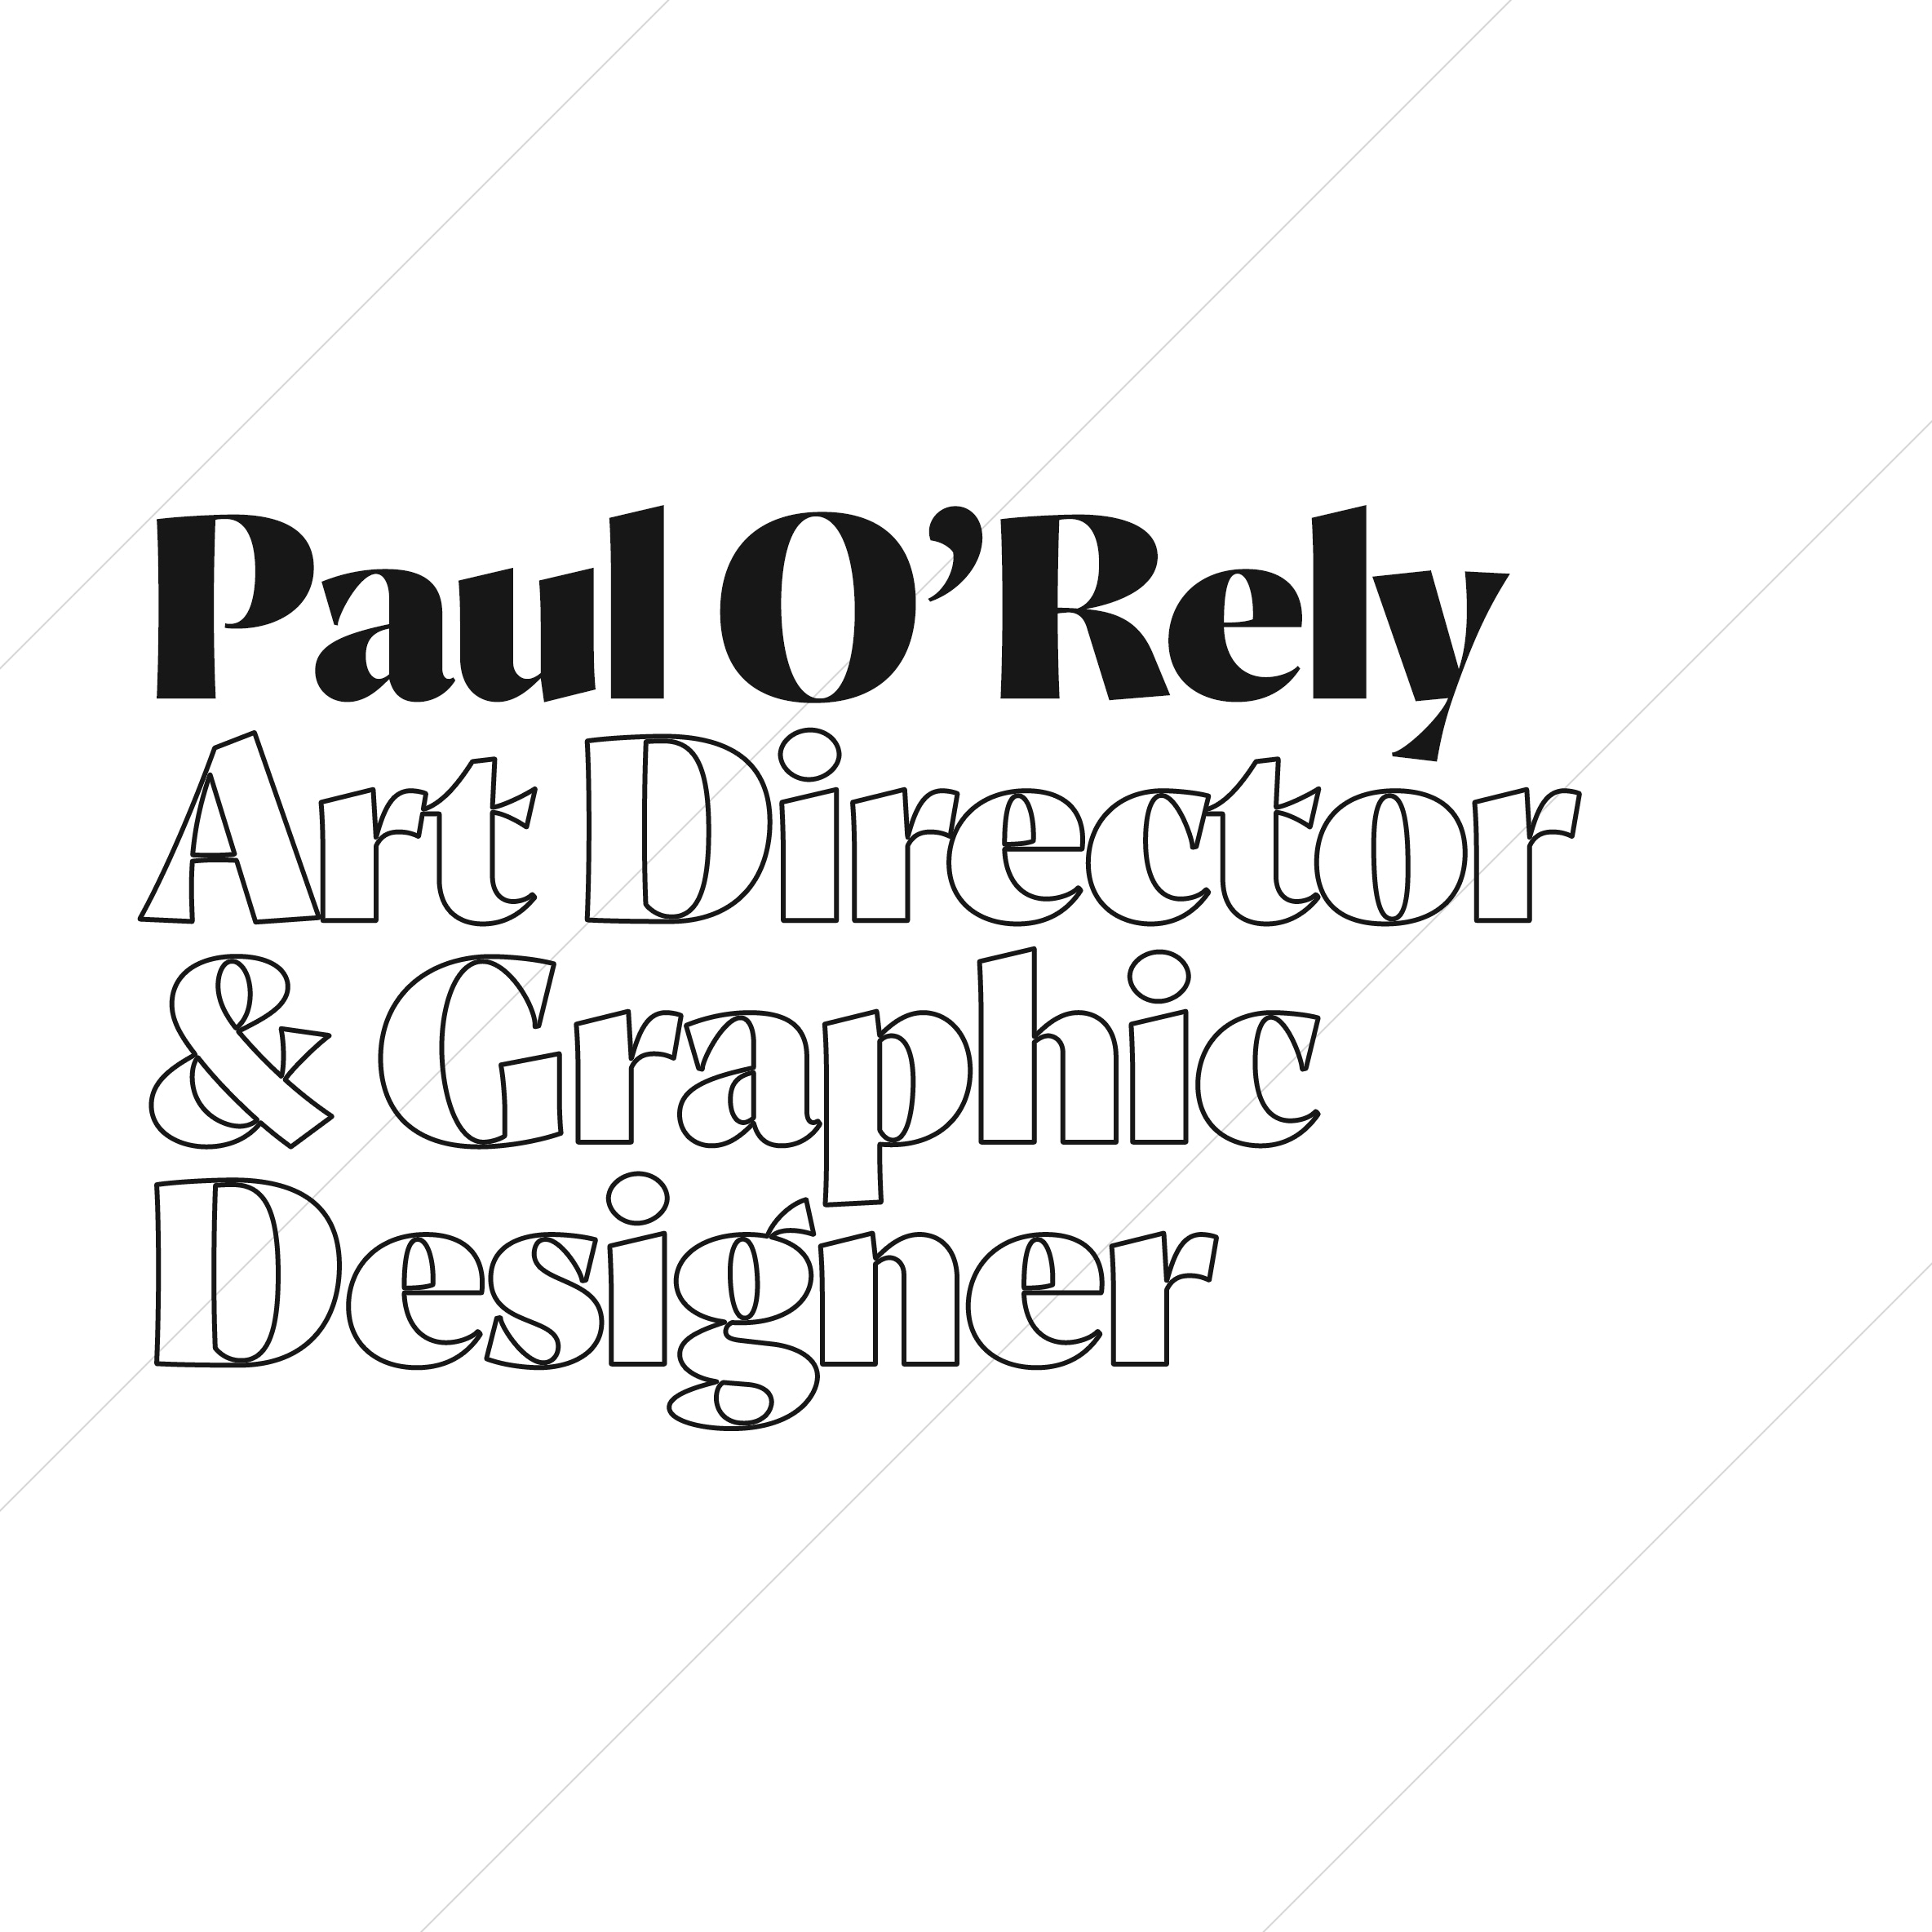 Paul O'Rely ⁄⁄ Art Director & Graphic Designer